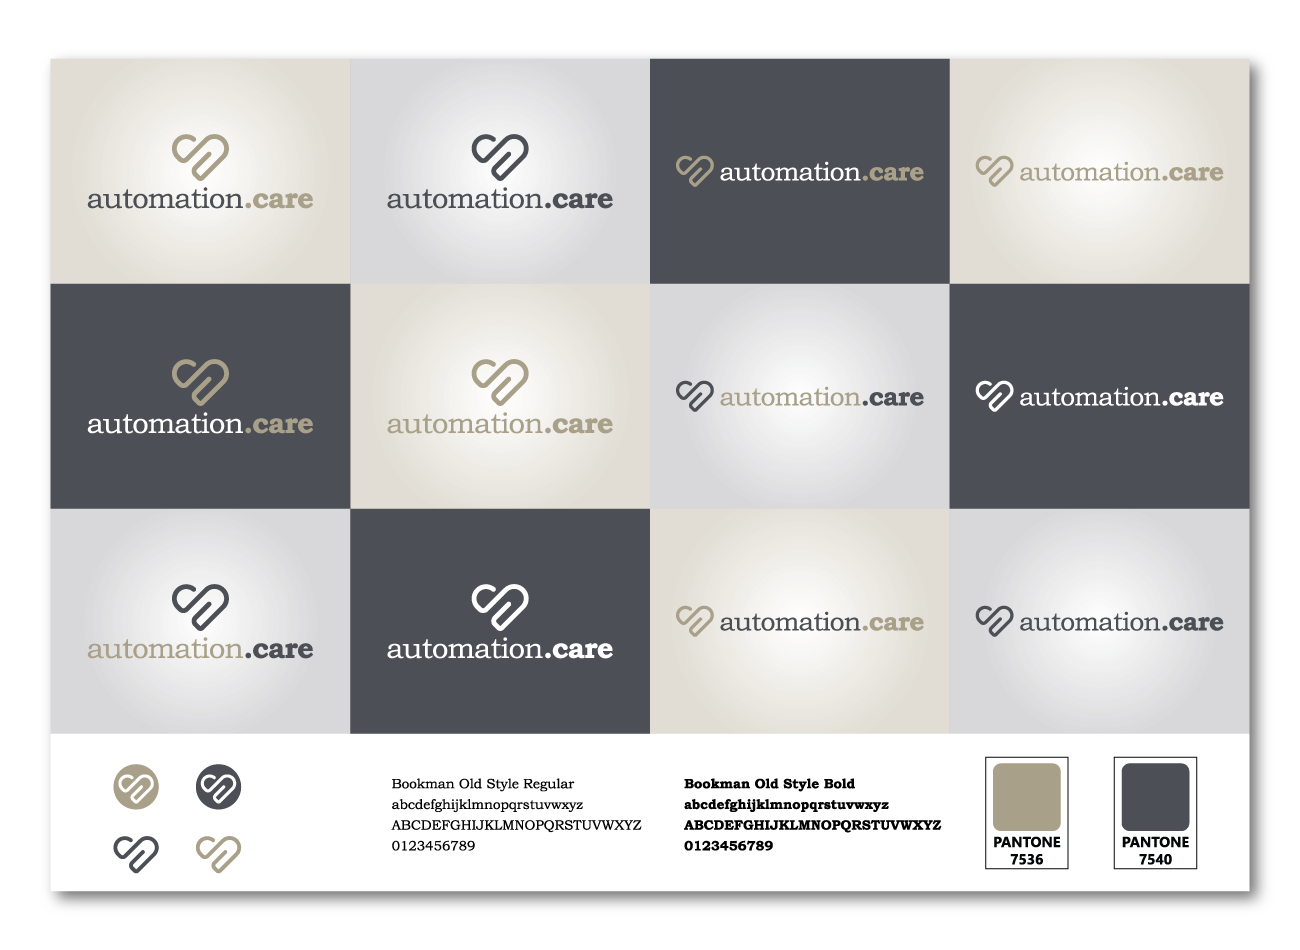 automation-care-logo-style-sheet.png